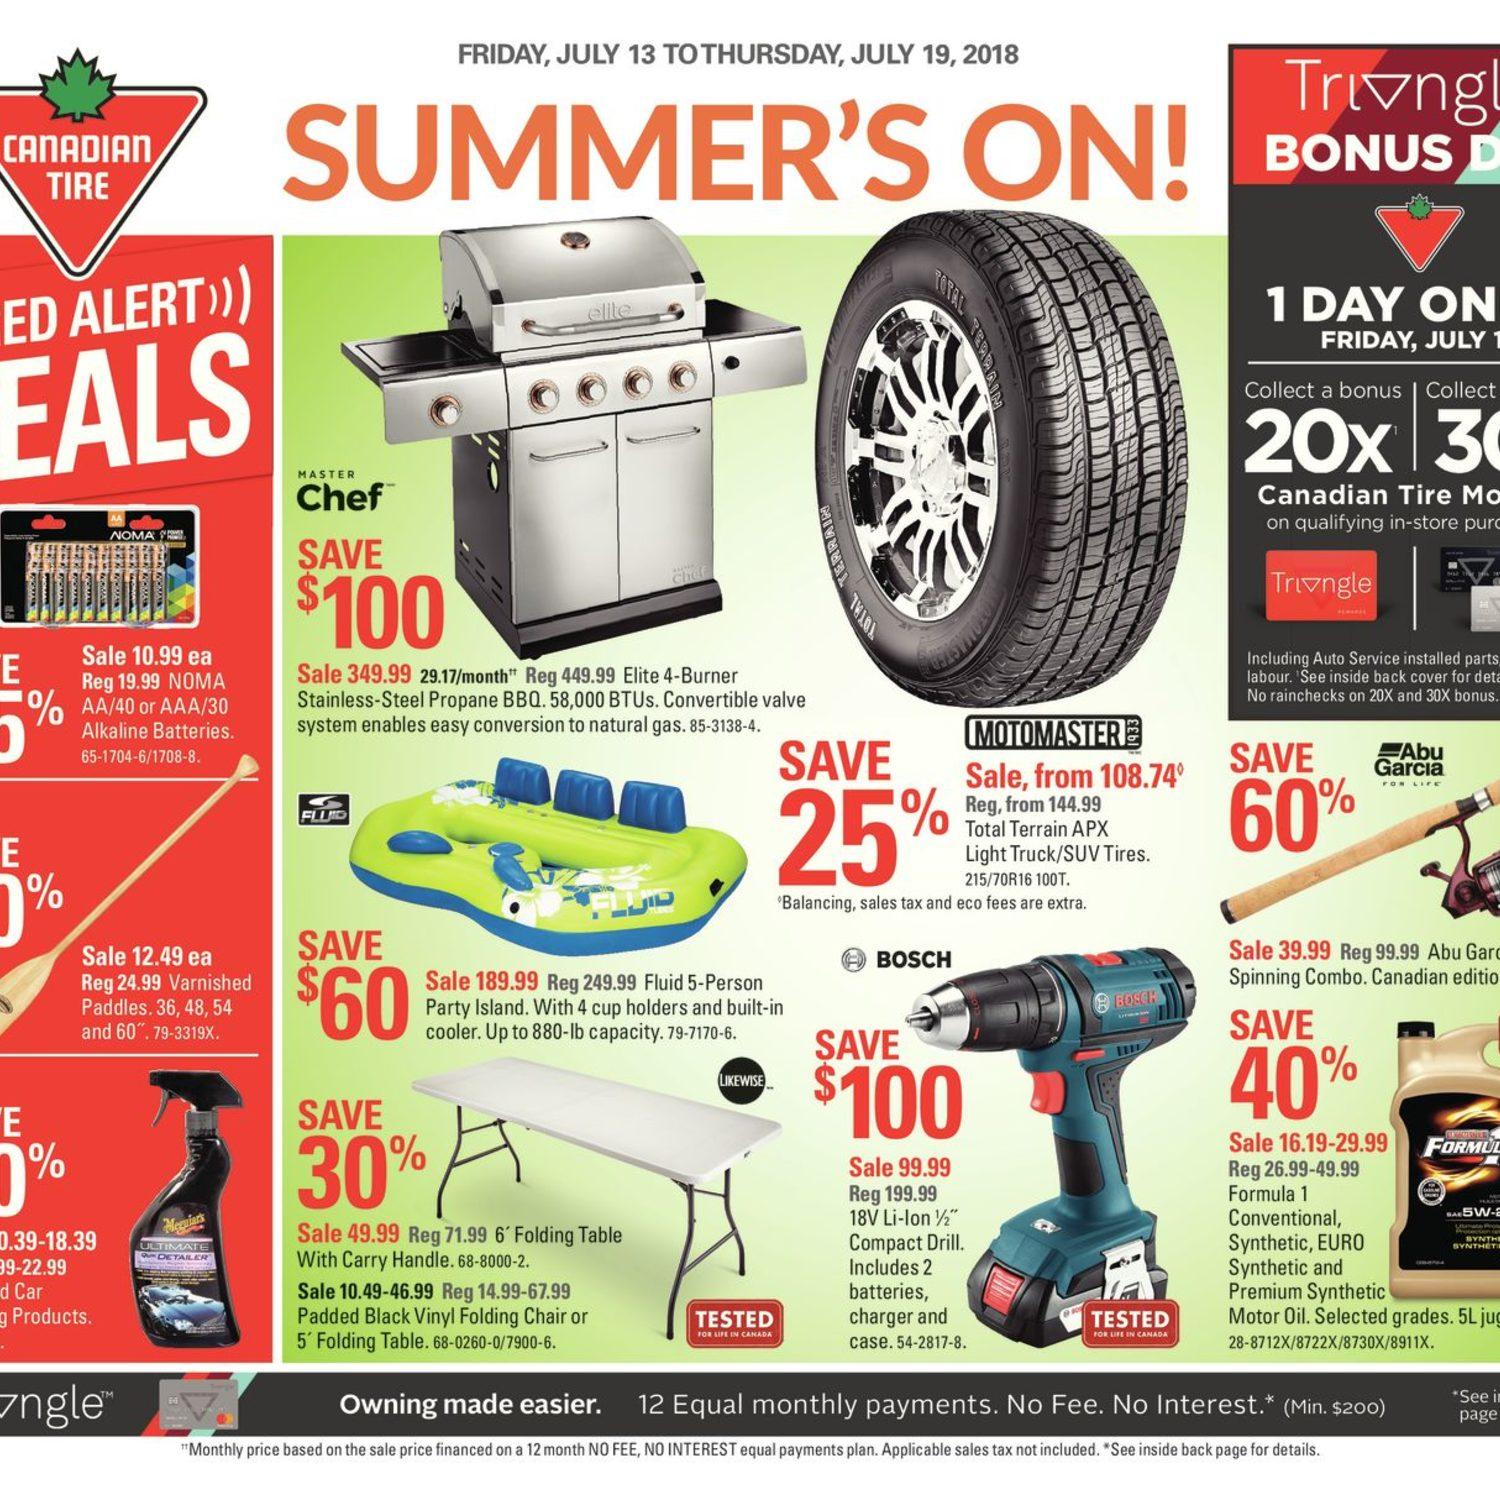 Canadian Tire Weekly Flyer Summer S On Jul 13 19 Redflagdeals Com